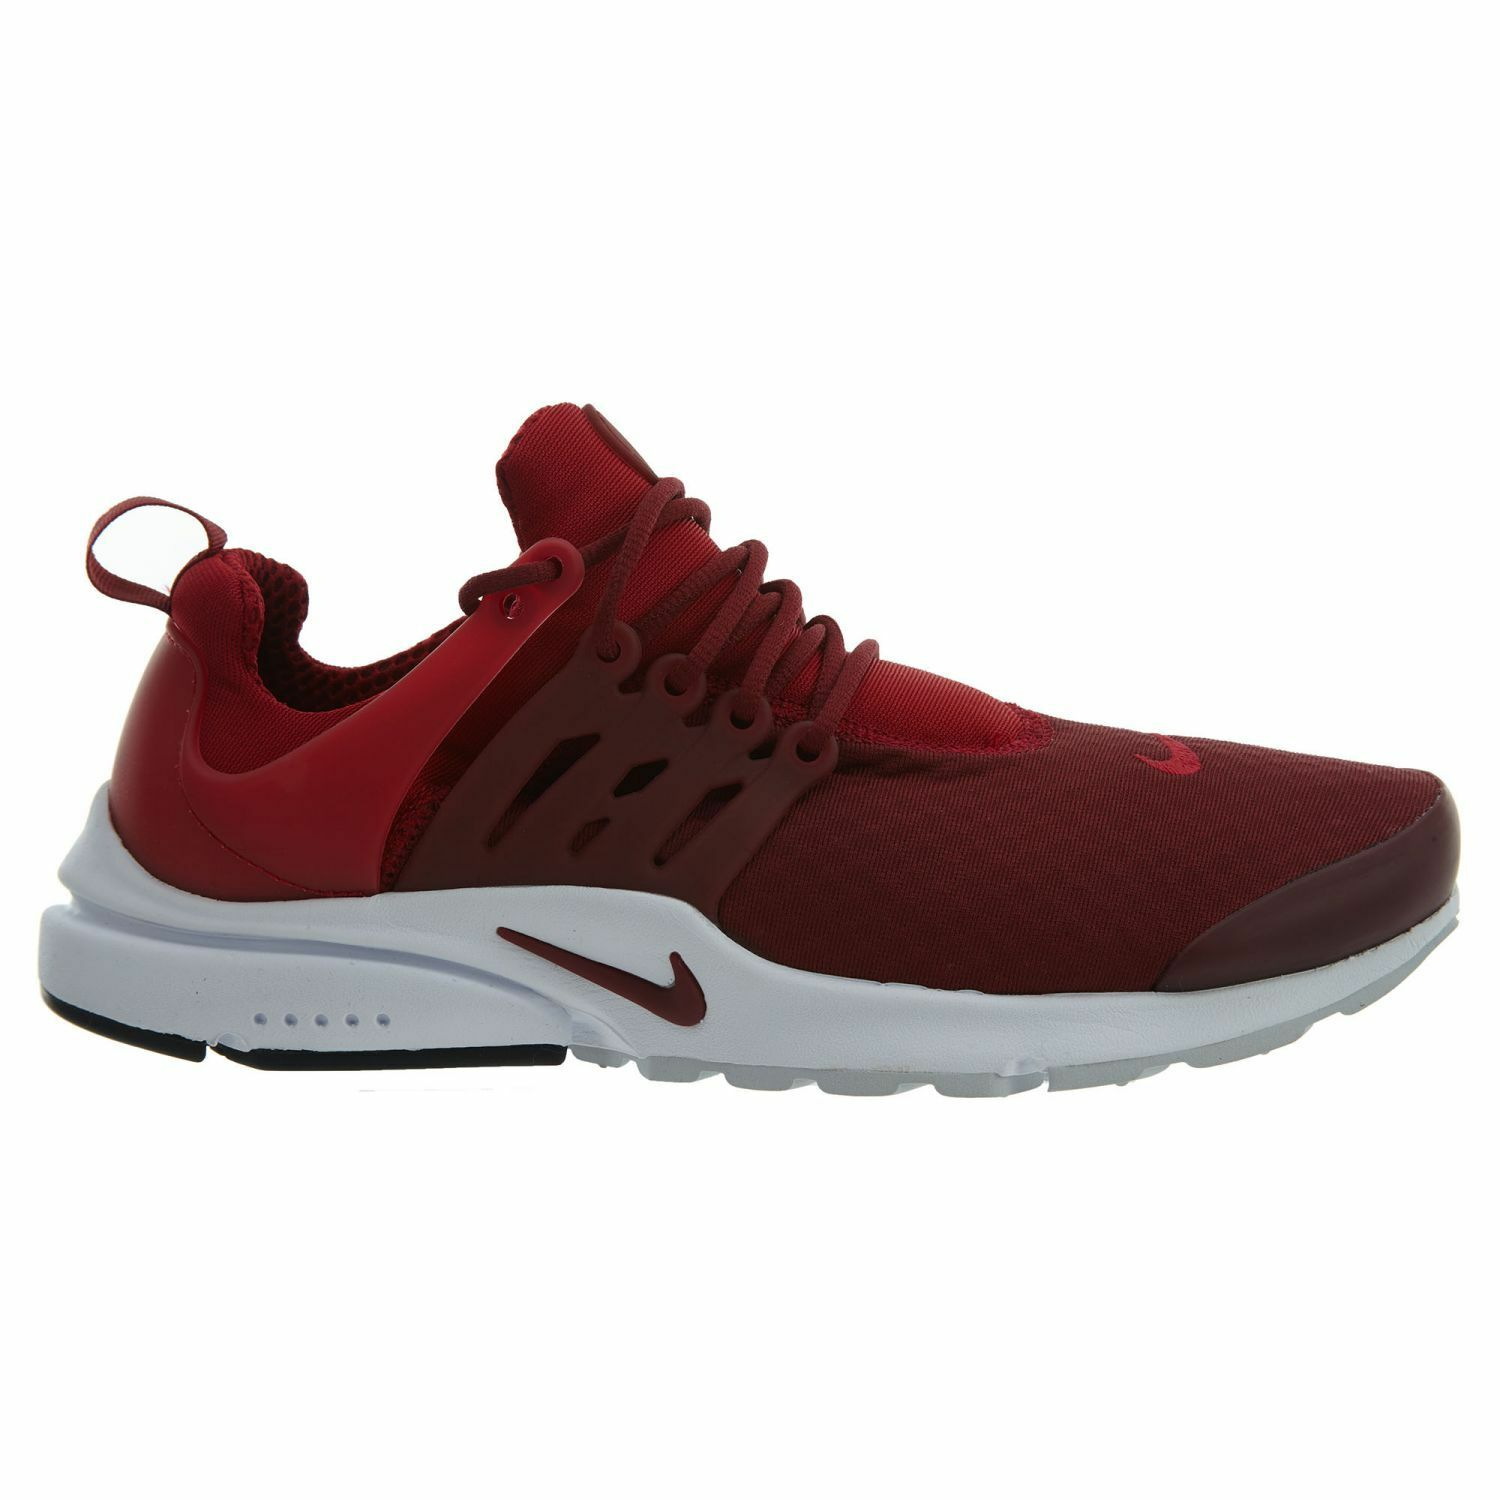 Nike Air Presto Essential Mens 848187-604 Shoes Gym Team Red Running Shoes 848187-604 Size 12 665001